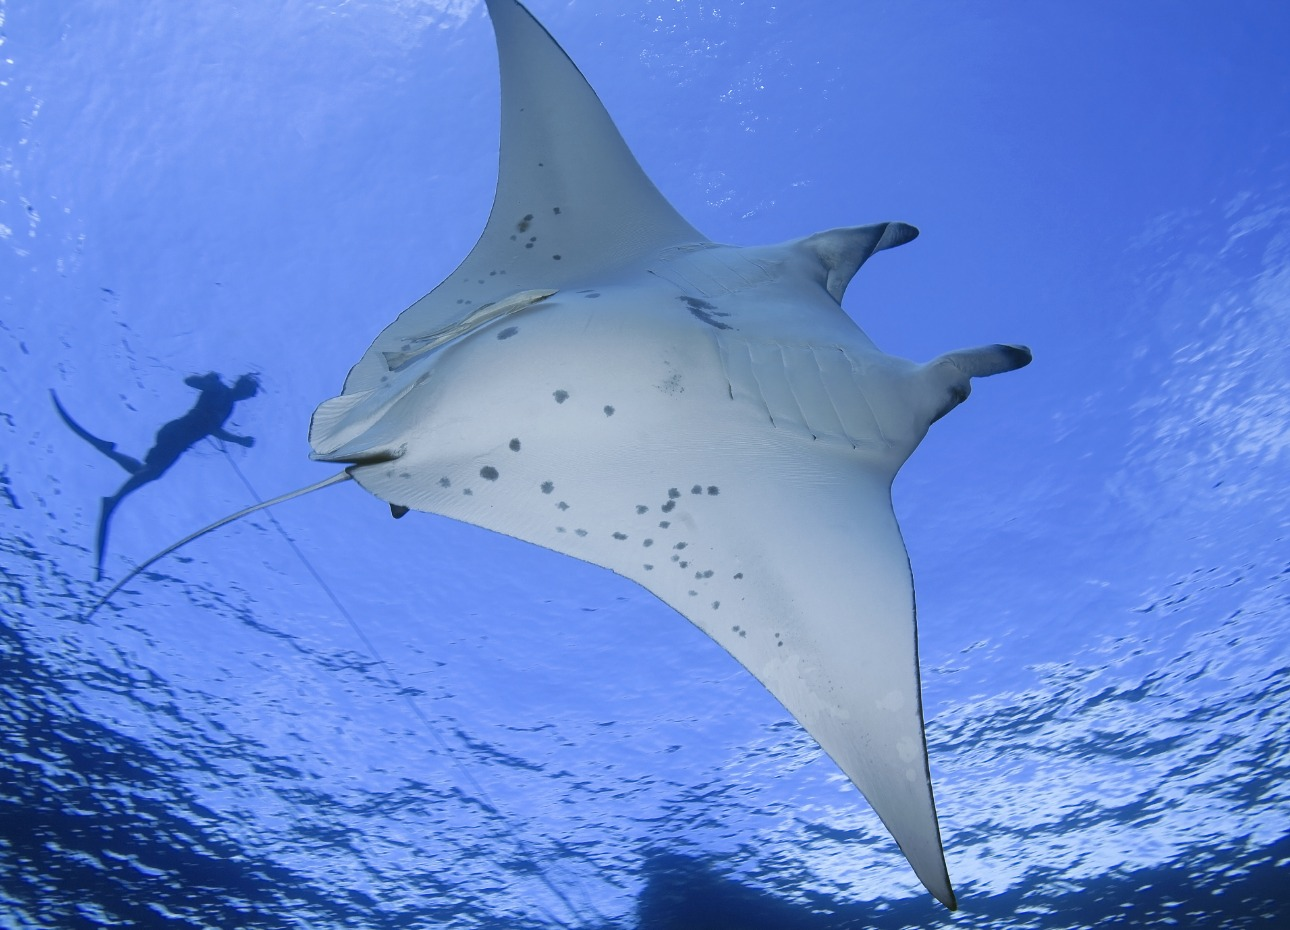 French Polynesia underwater image of manta ray and diver